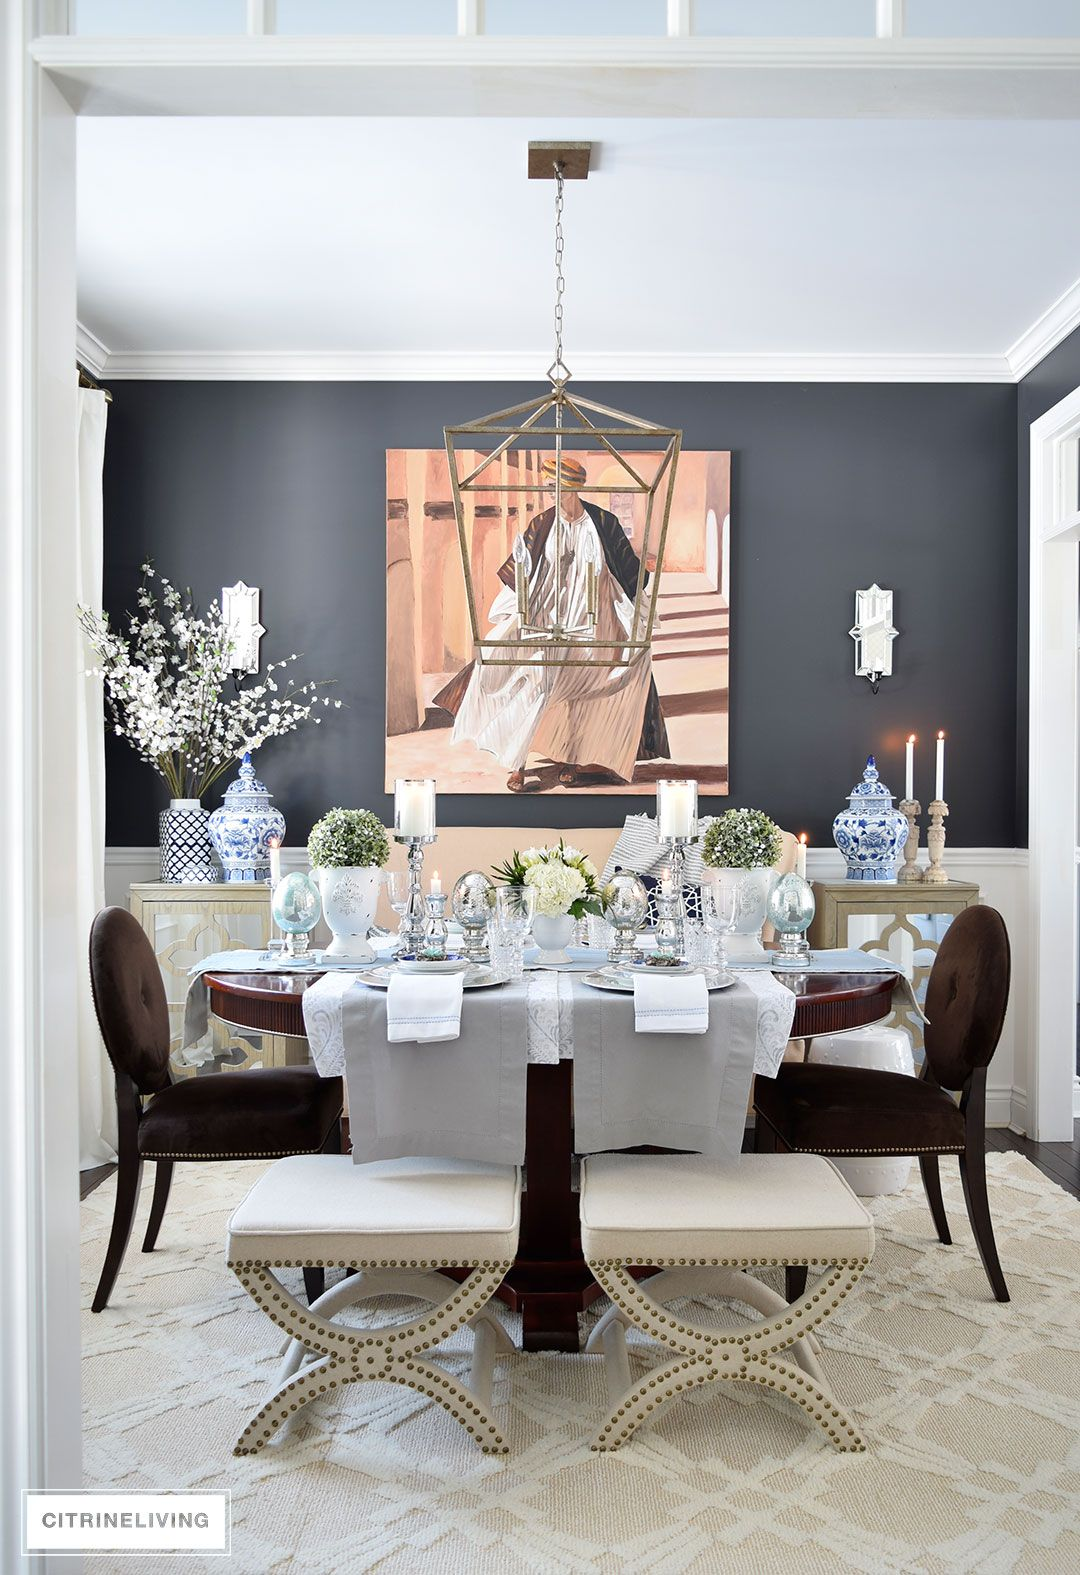 21 Easy Unexpected Living Room Decorating Ideas: A SIMPLE AND ELEGANT EASTER TABLESCAPE